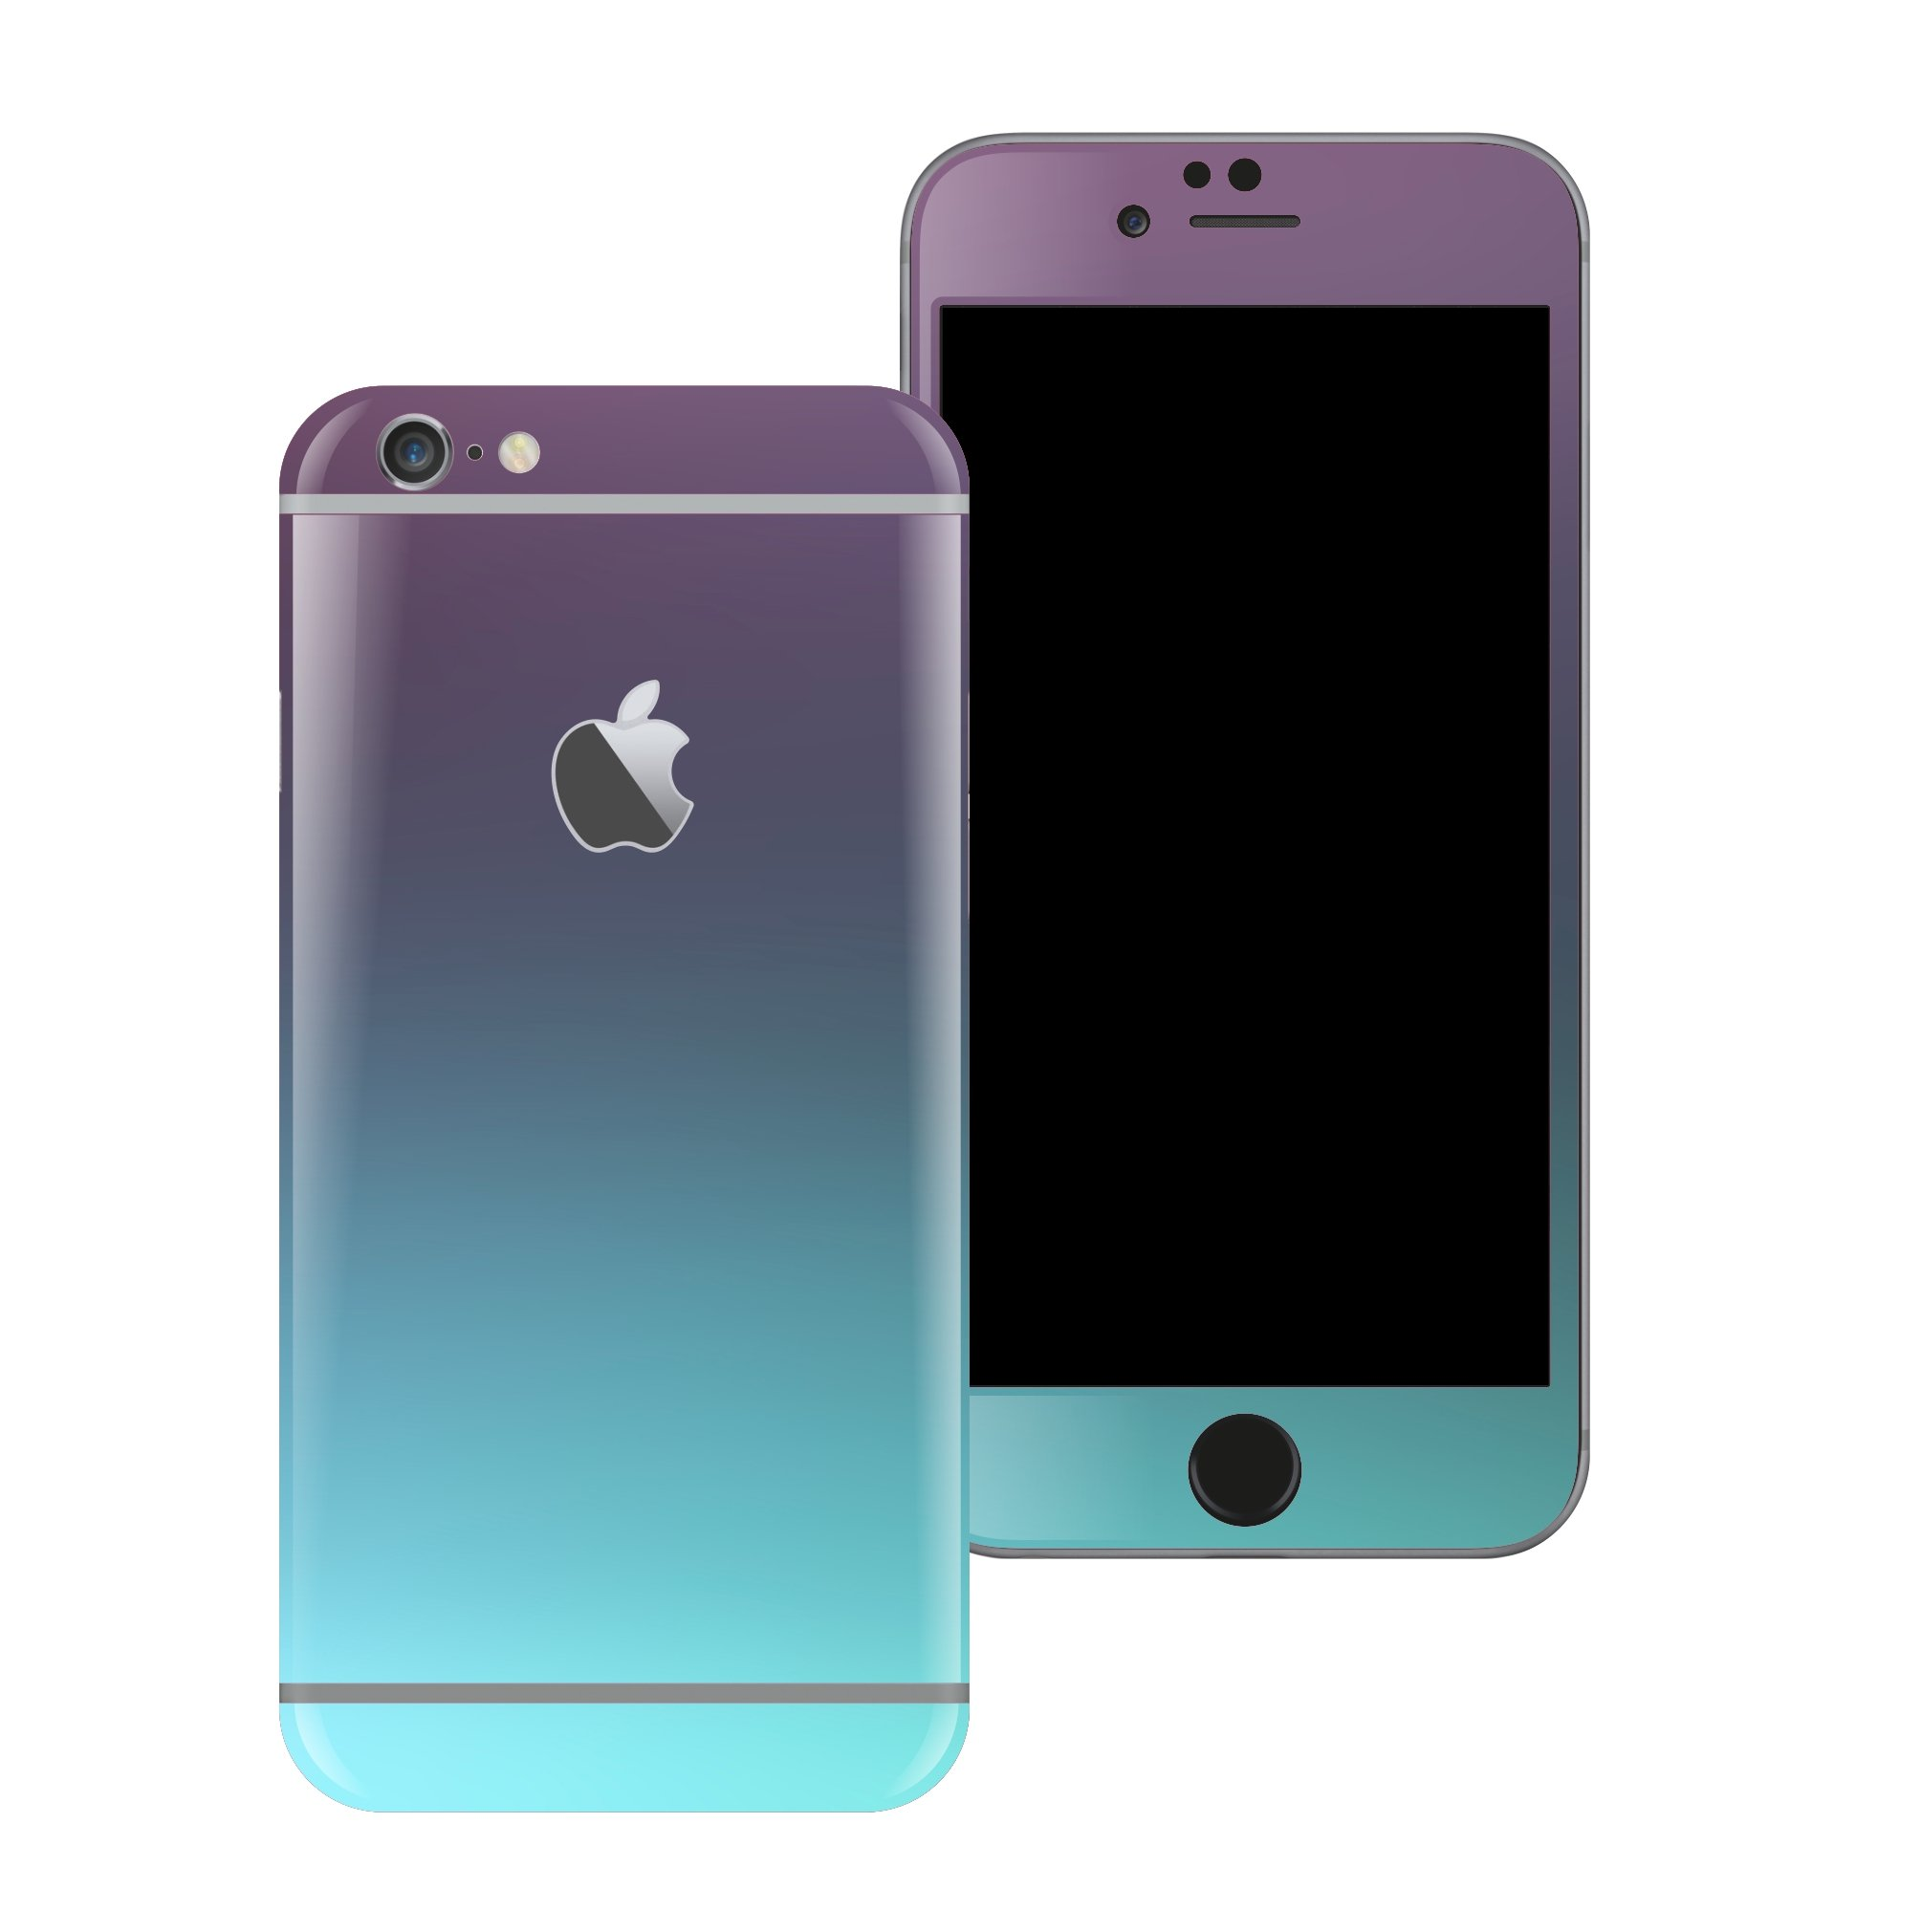 iPhone 6S PLUS Chameleon Turquoise Lavender Matt Matte Metallic Skin Wrap Sticker Cover Protector Decal by EasySkinz